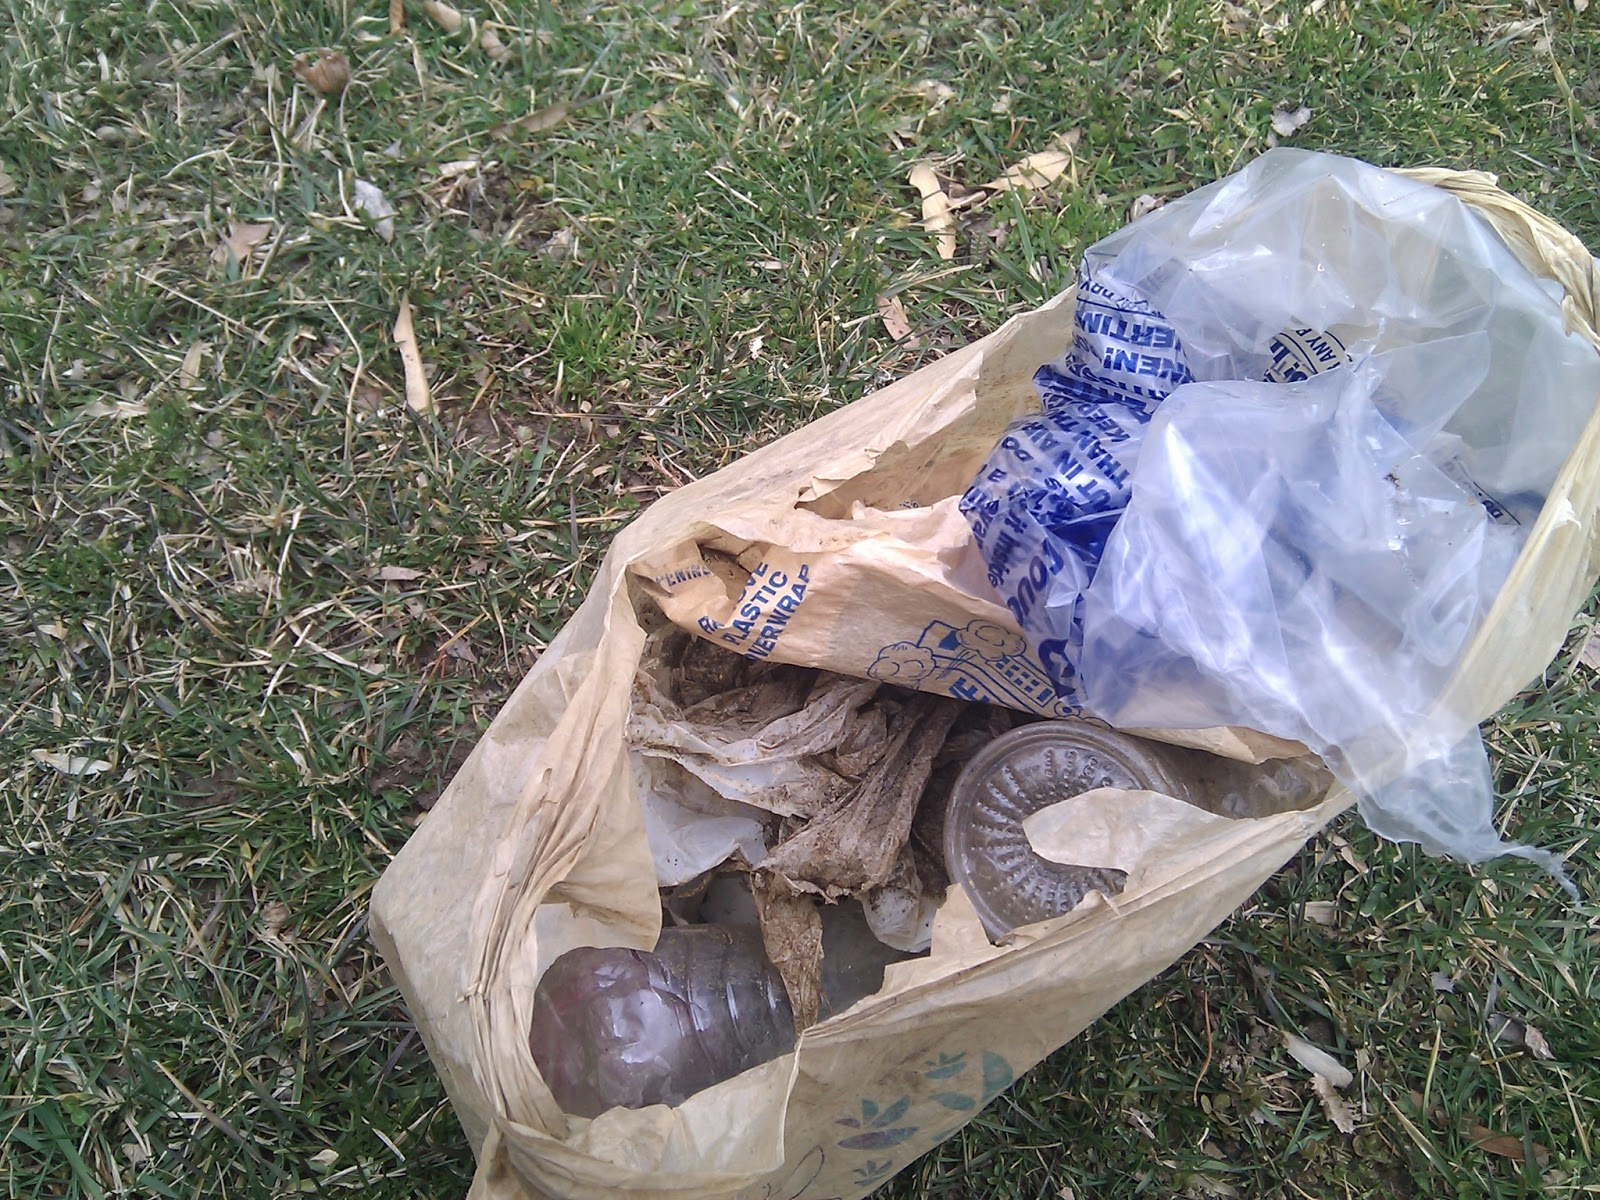 A bag of trash collected in the park